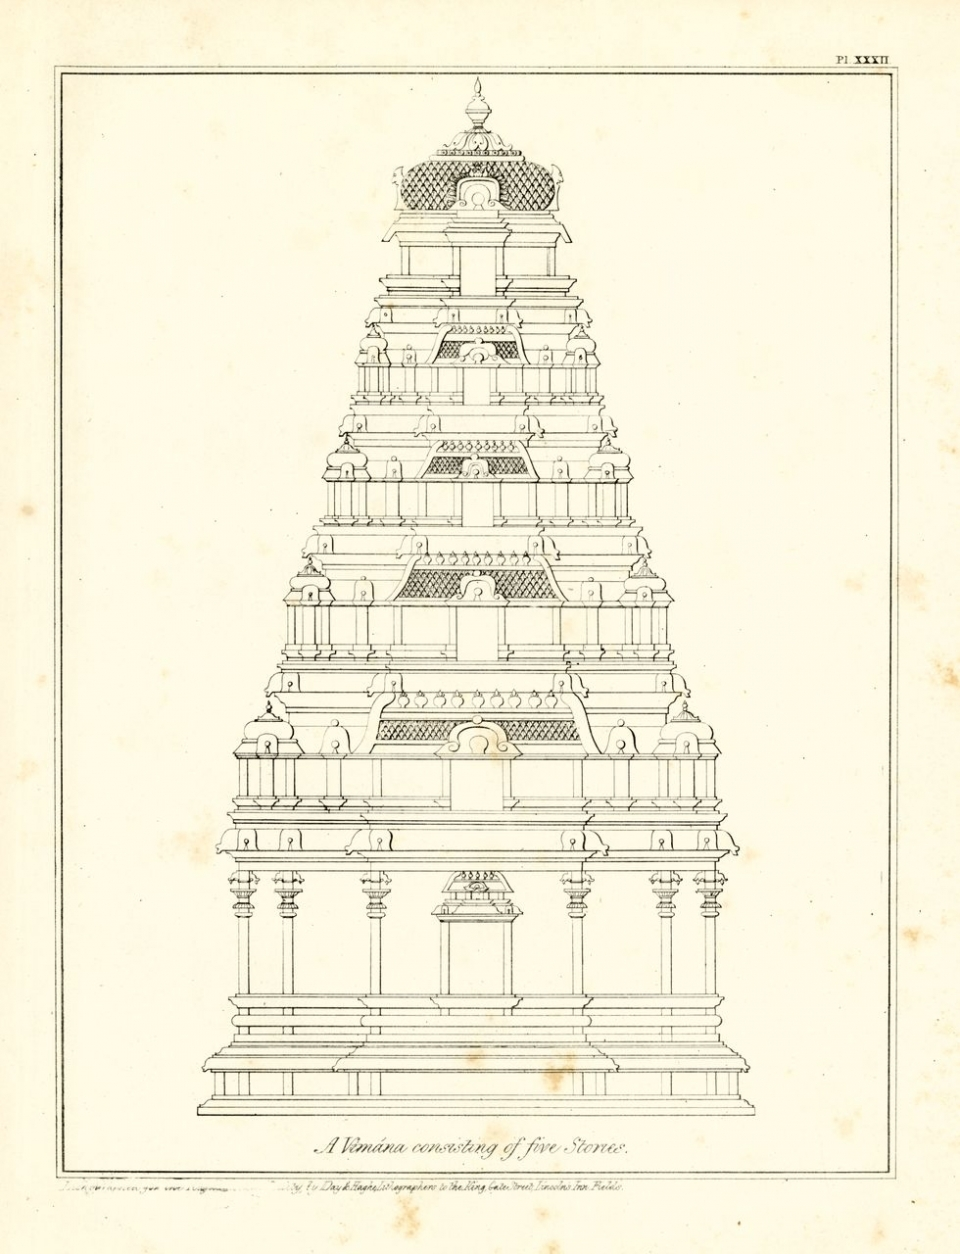 essay on the architecture of the hind atilde ordm s south asia ldquoa vimana consisting of three stories rdquo from ram raz essay on ldquo